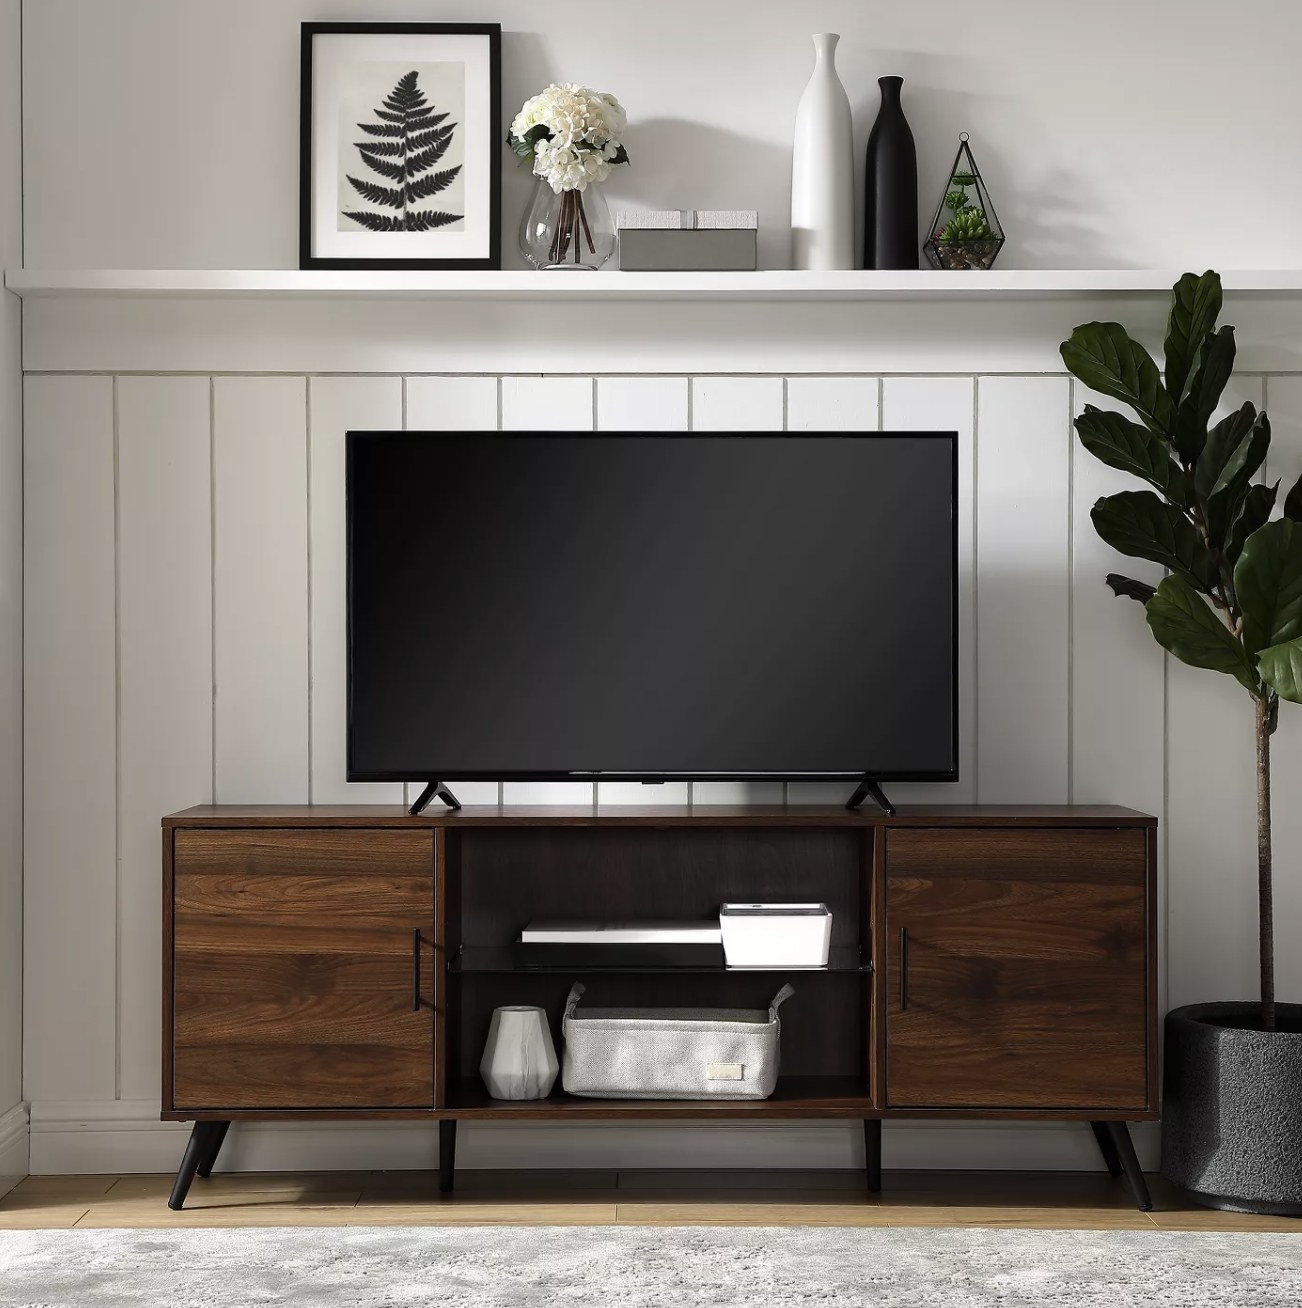 A dark wood TV stand with shelves and two cabinet doors